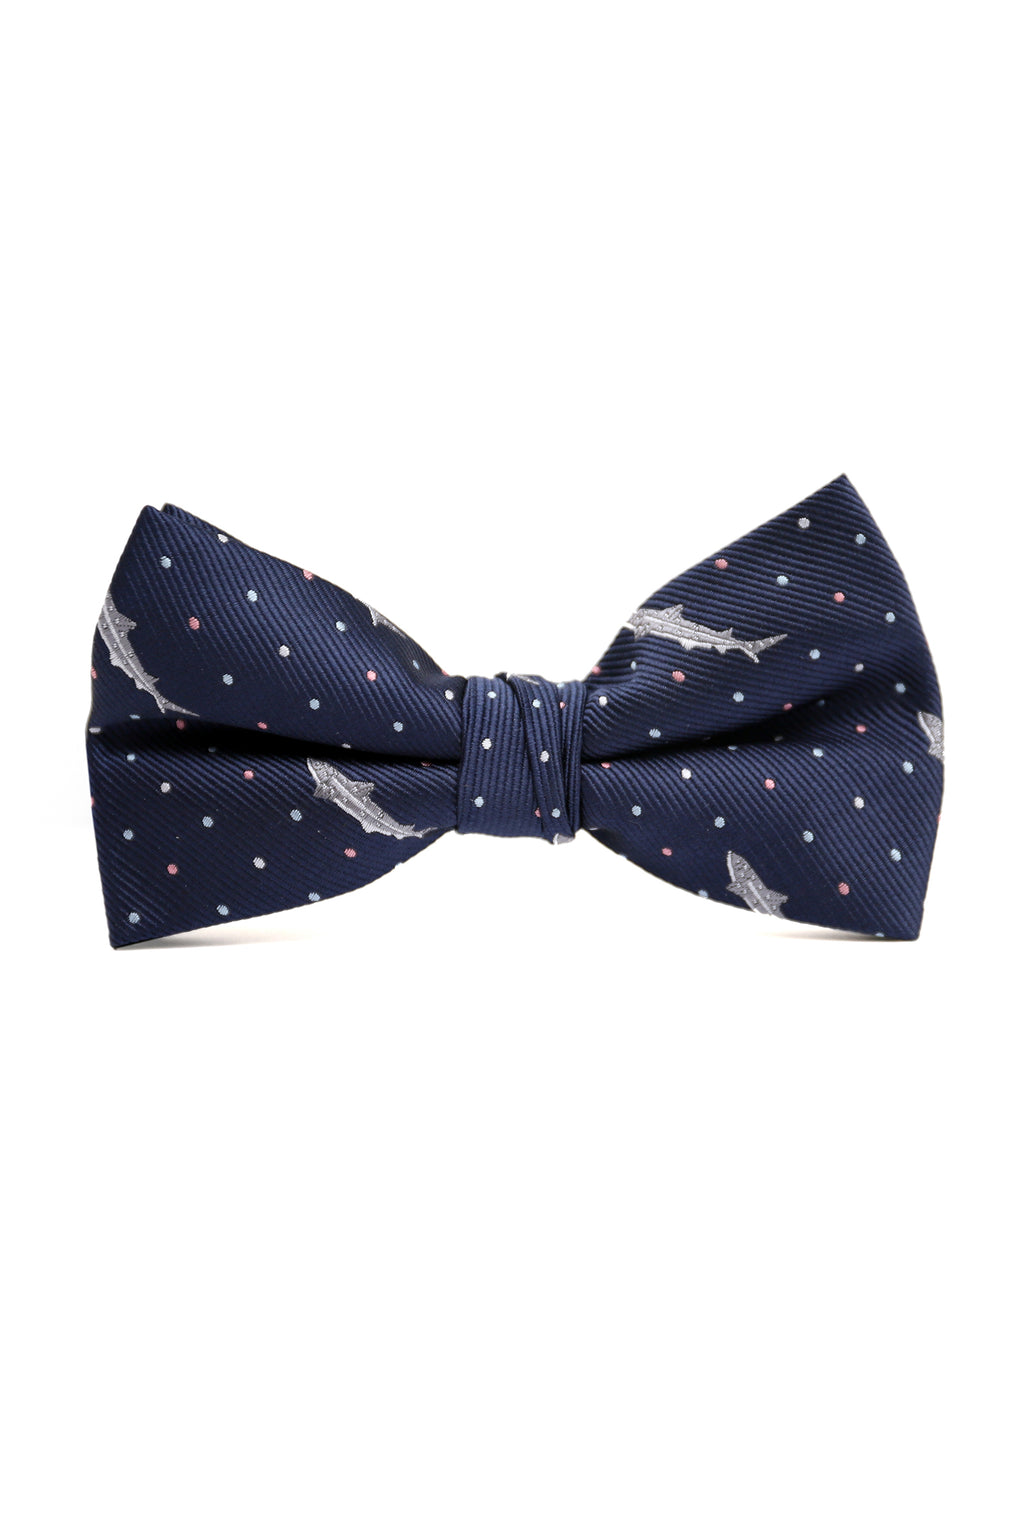 SHARK BOW TIE-NAVY